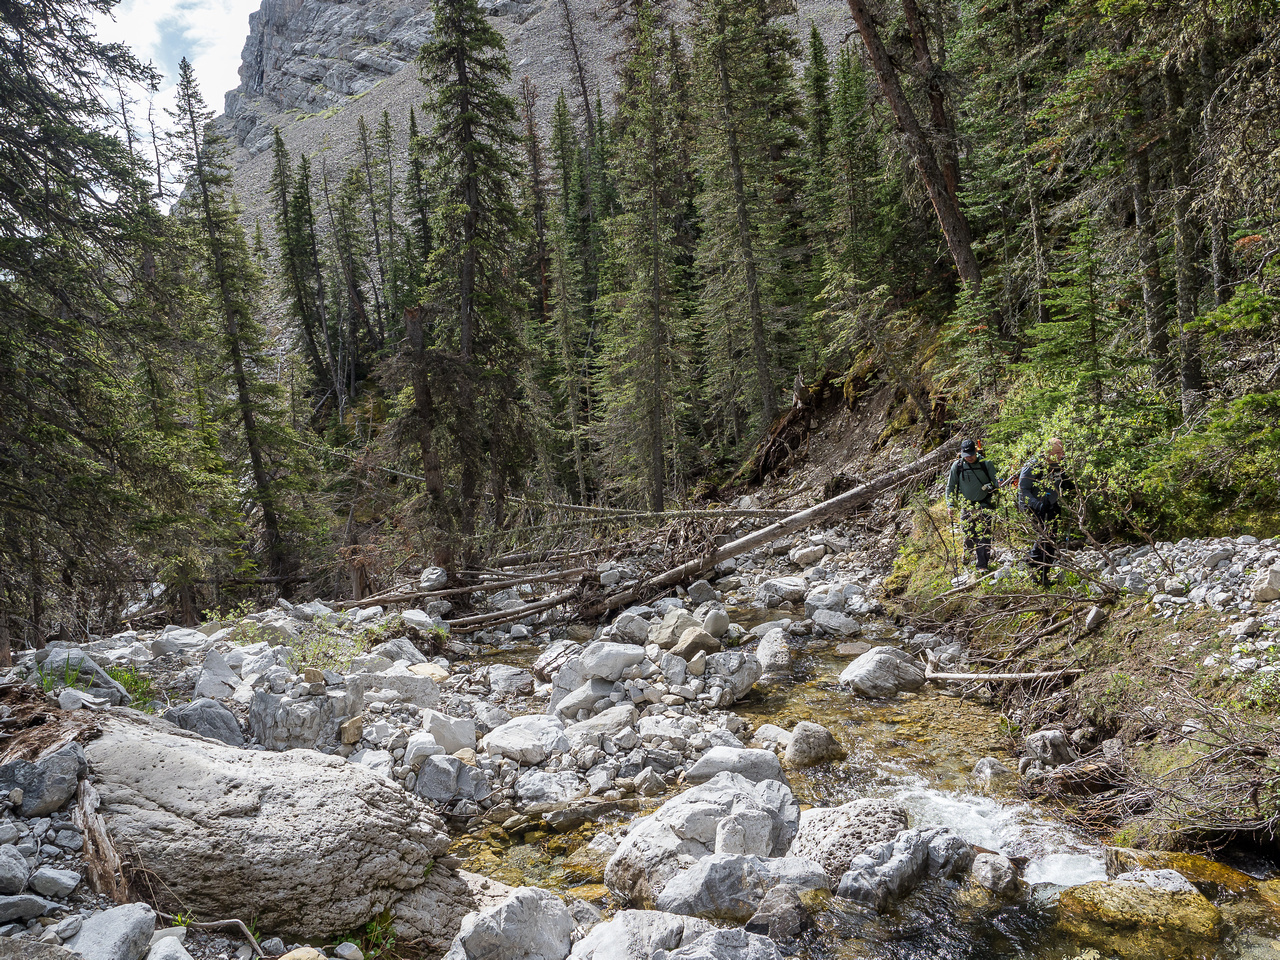 Looking downstream at the spot where we ascended a steep ridge between the two drainages that led us to treeline.